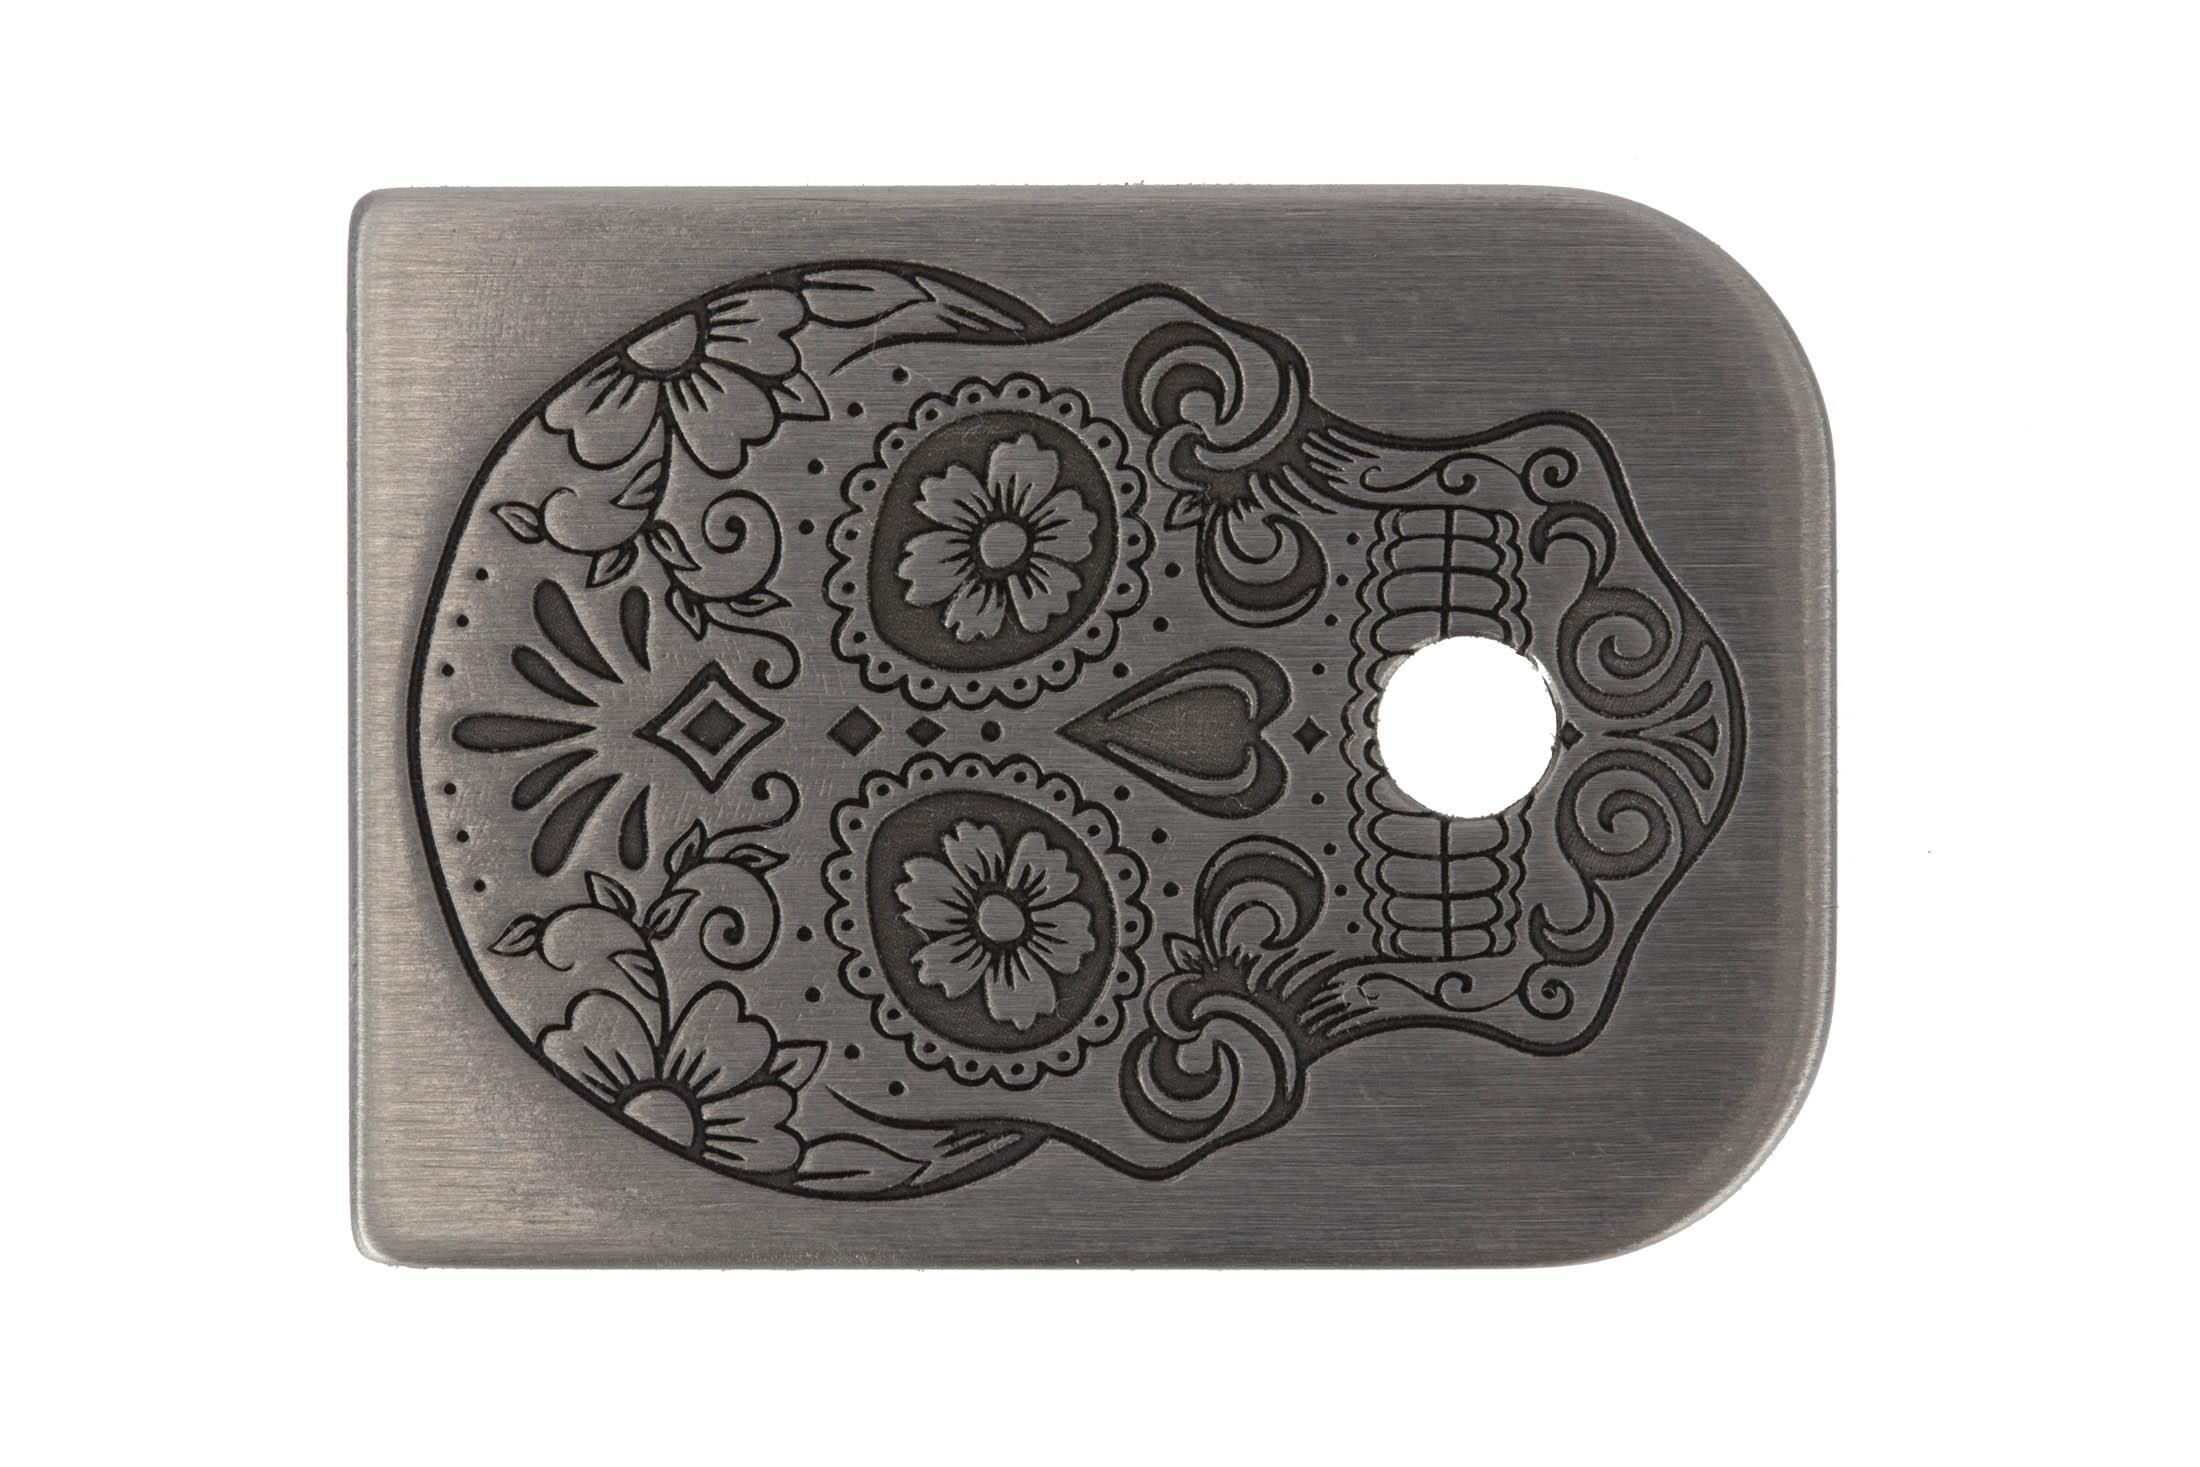 The Classy Raptor Tactical GLOCK Magazine Plate is made in the U.S.A.